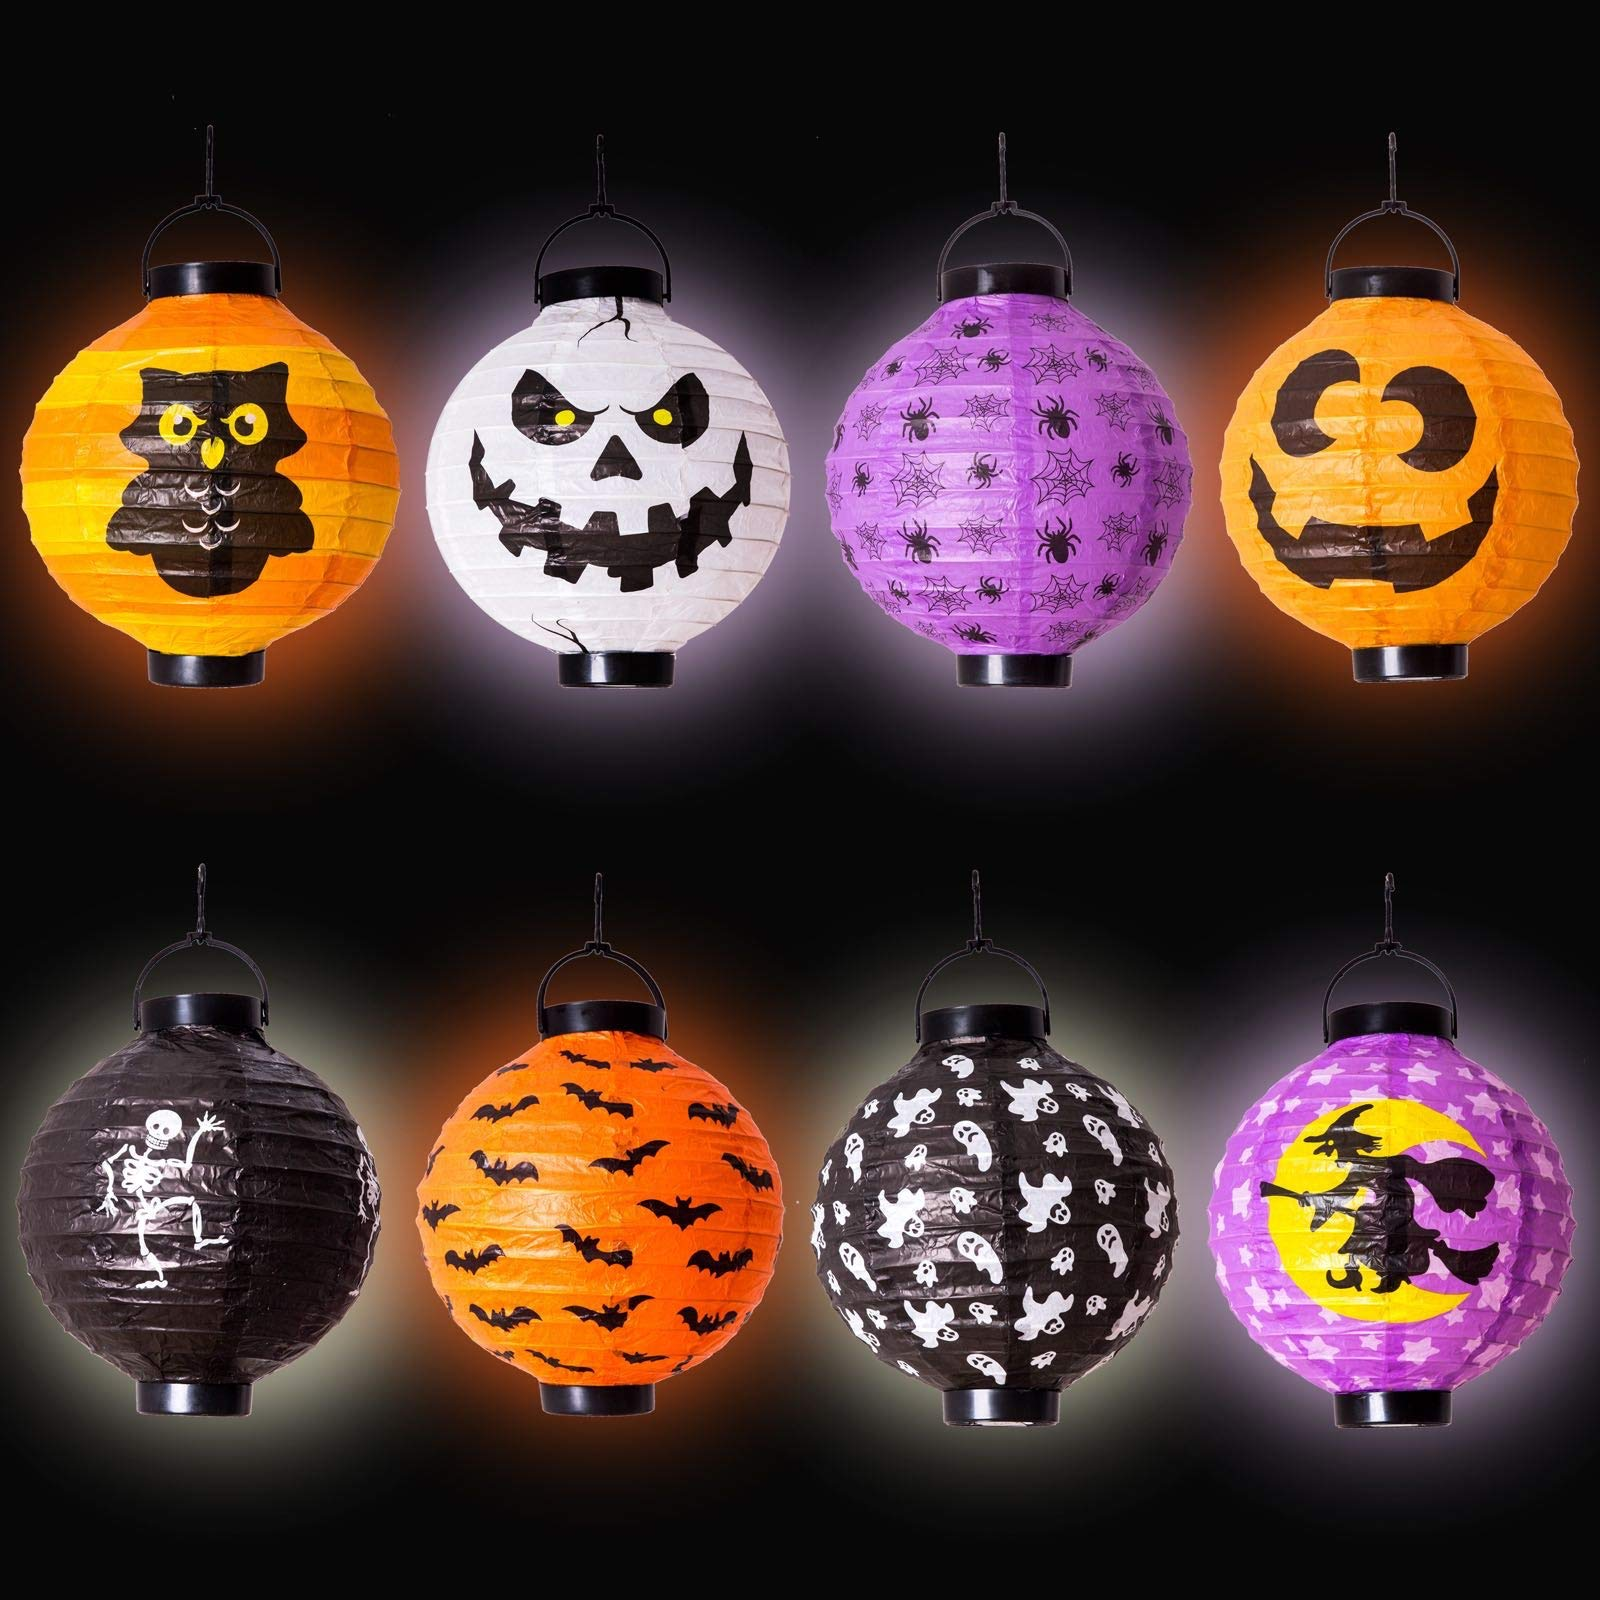 8 Halloween Decorations Paper Lanterns with LED Light With different style for Halloween Party Supplies Halloween Party Favor (12.5-inch tall include Hanging Hook)(Batteries not included) by JOYIN